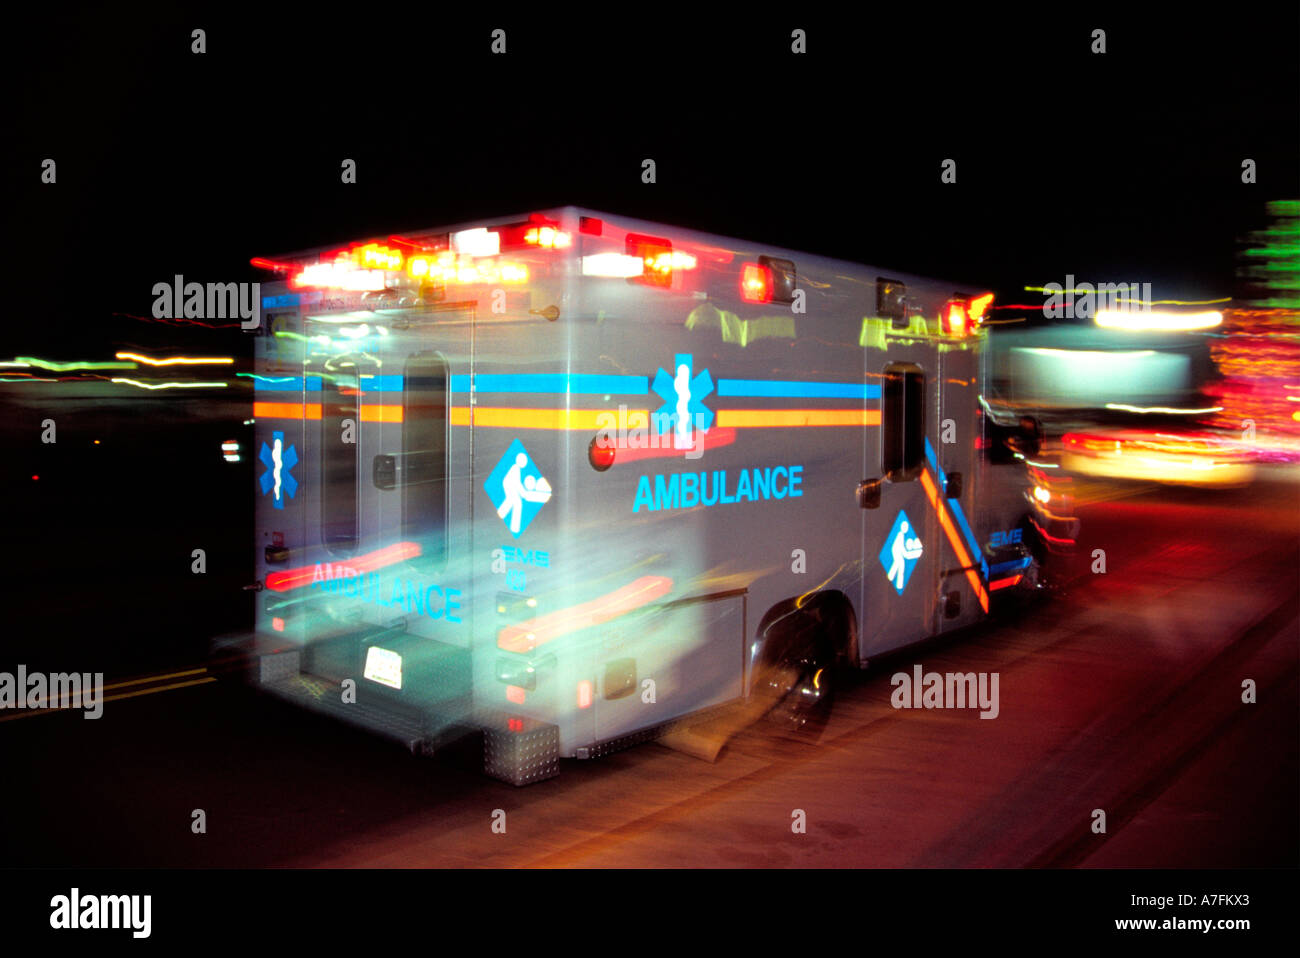 City Night   Ambulance Responds, Racing To The Scene With Lights Flashing  And Sirens Sounding Awesome Design